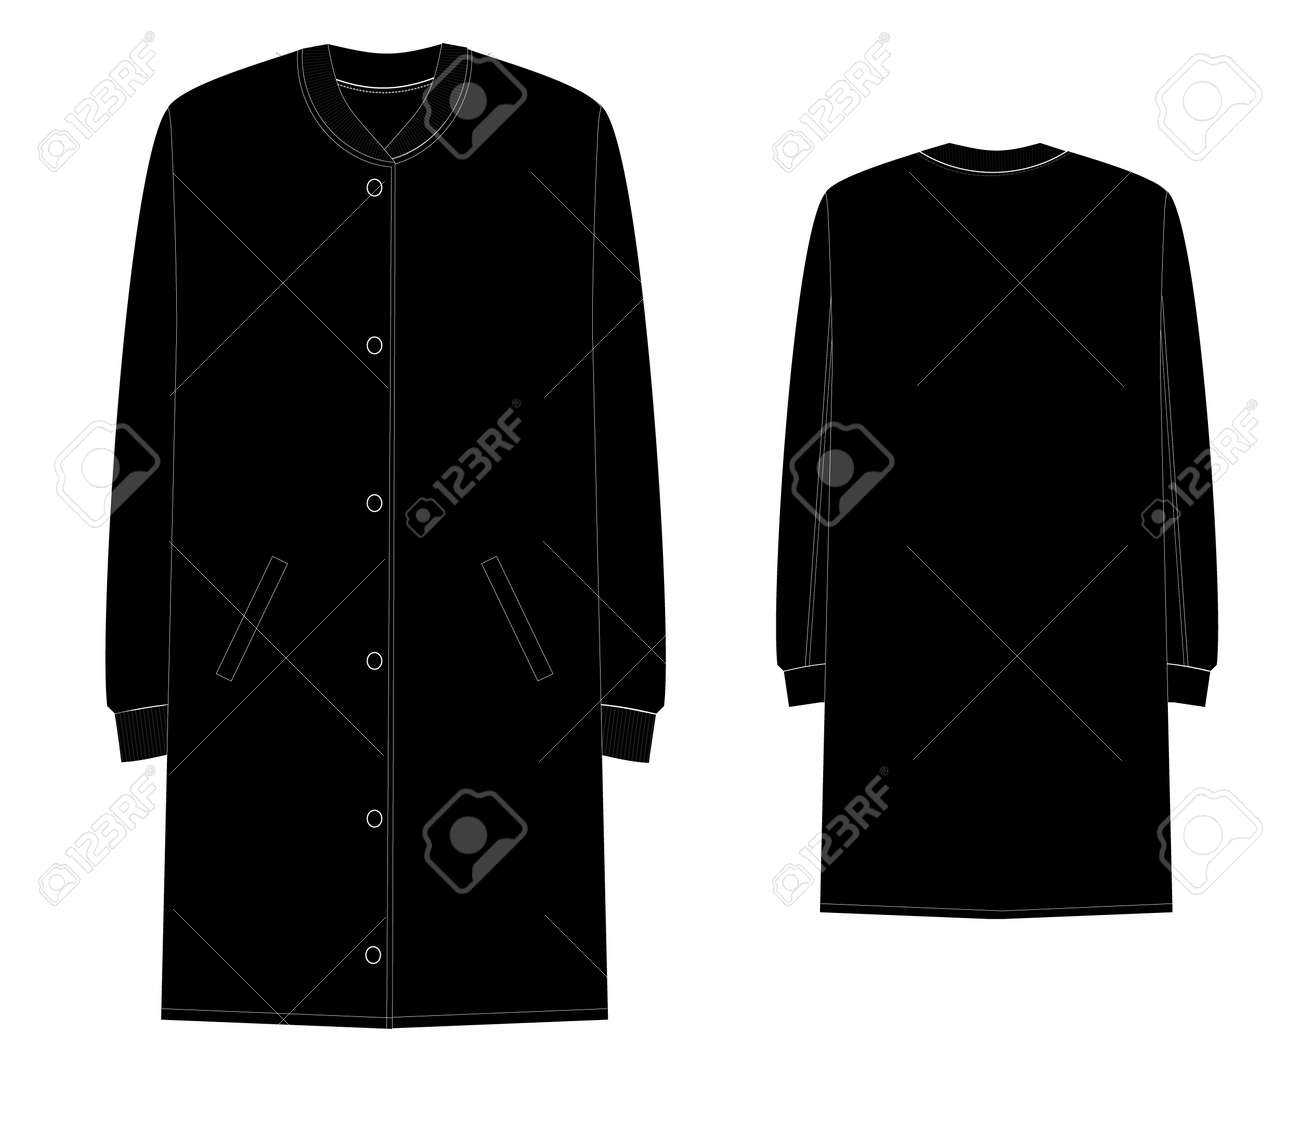 Unisex Long Bomber Jacket Technical Sketch Royalty Free Cliparts